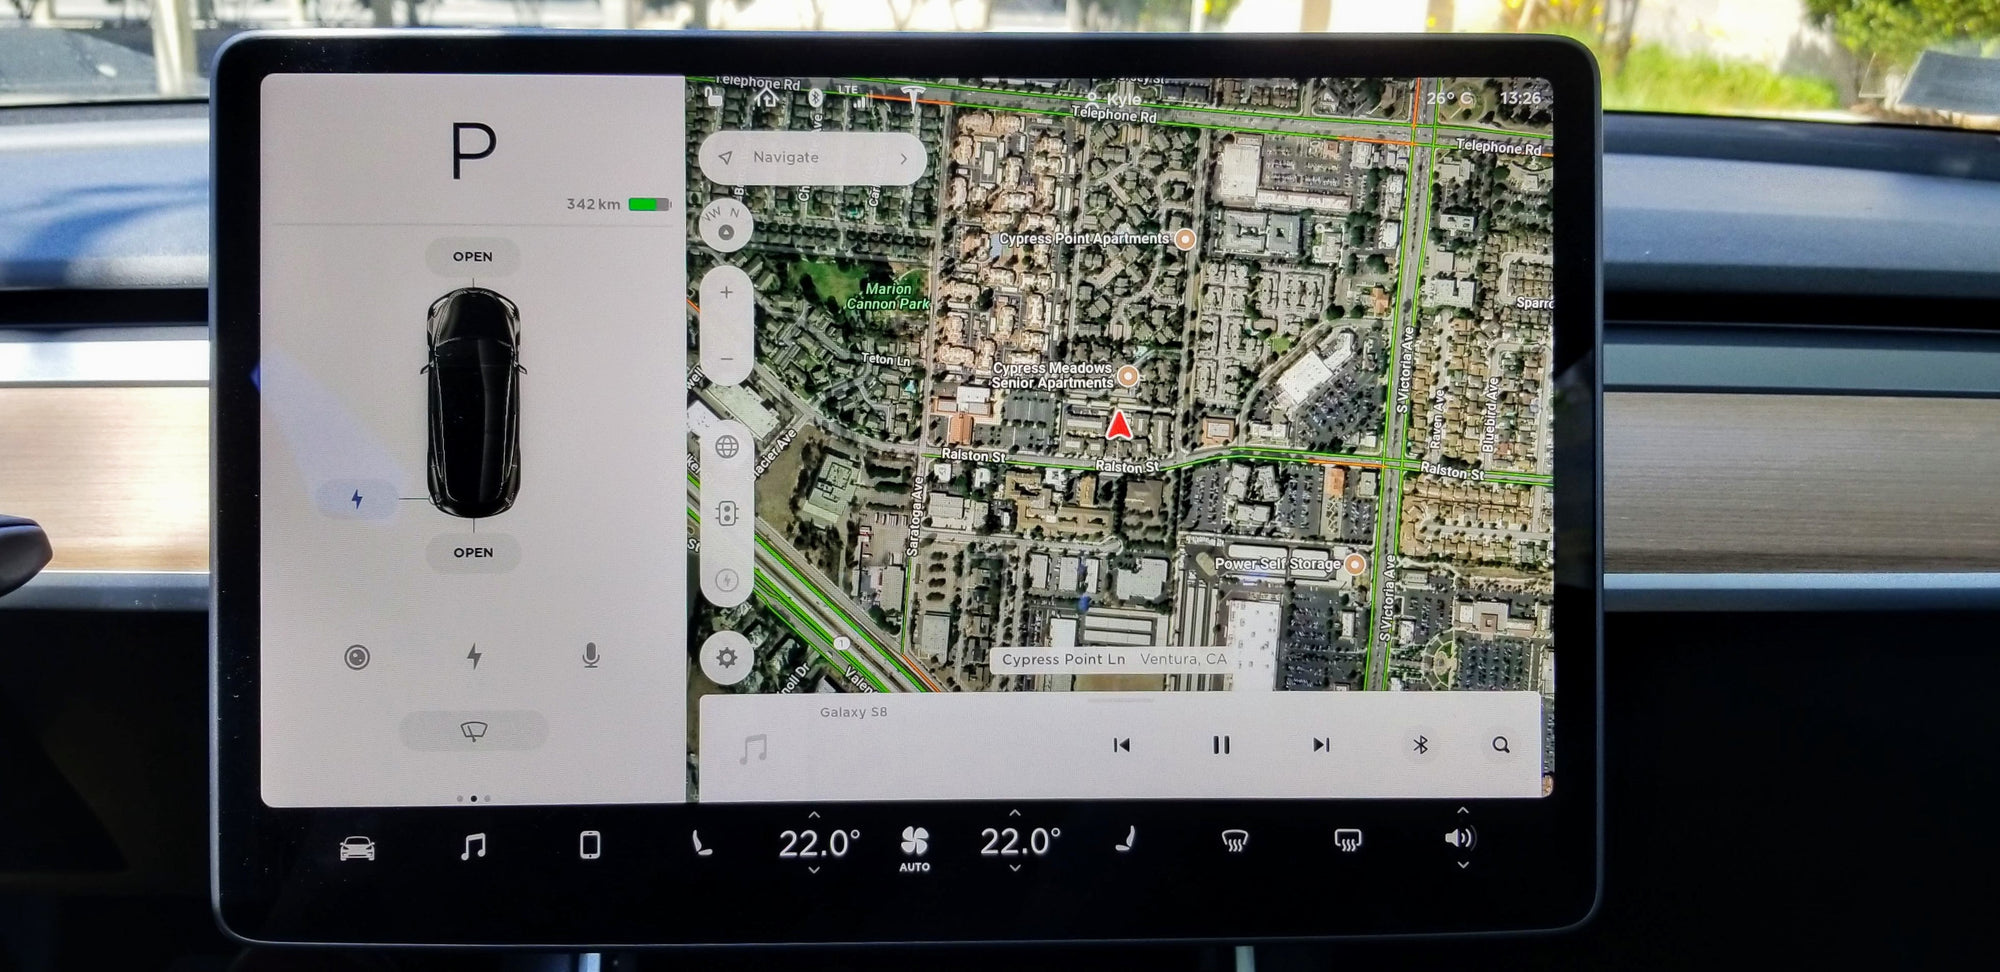 Details of Tesla latest patent - 'Vehicle Positioning Technology'